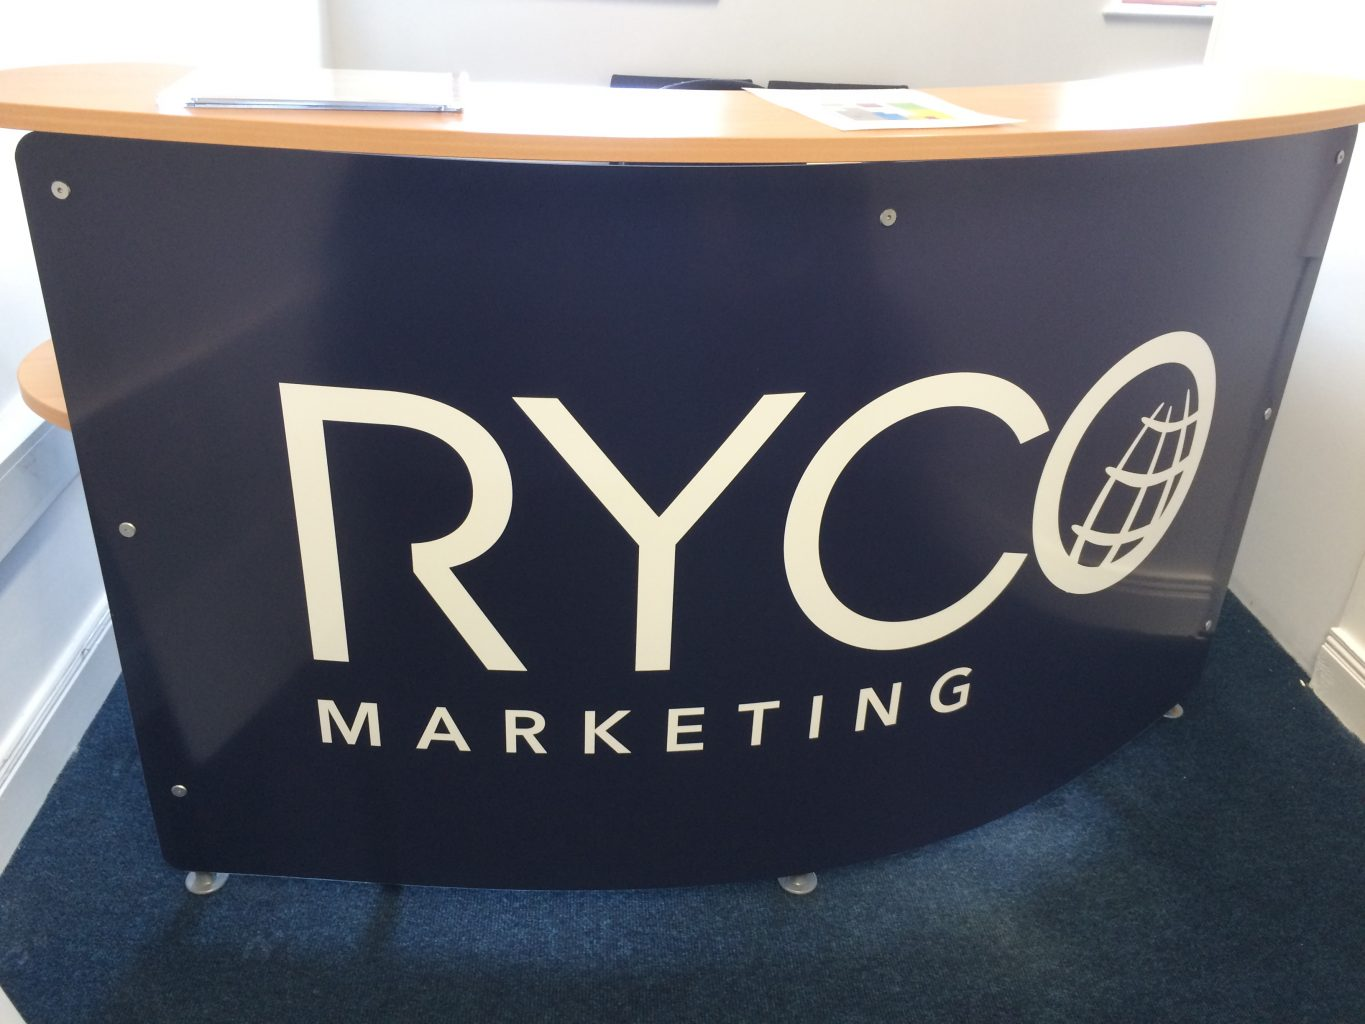 Main Ryco Reception desk